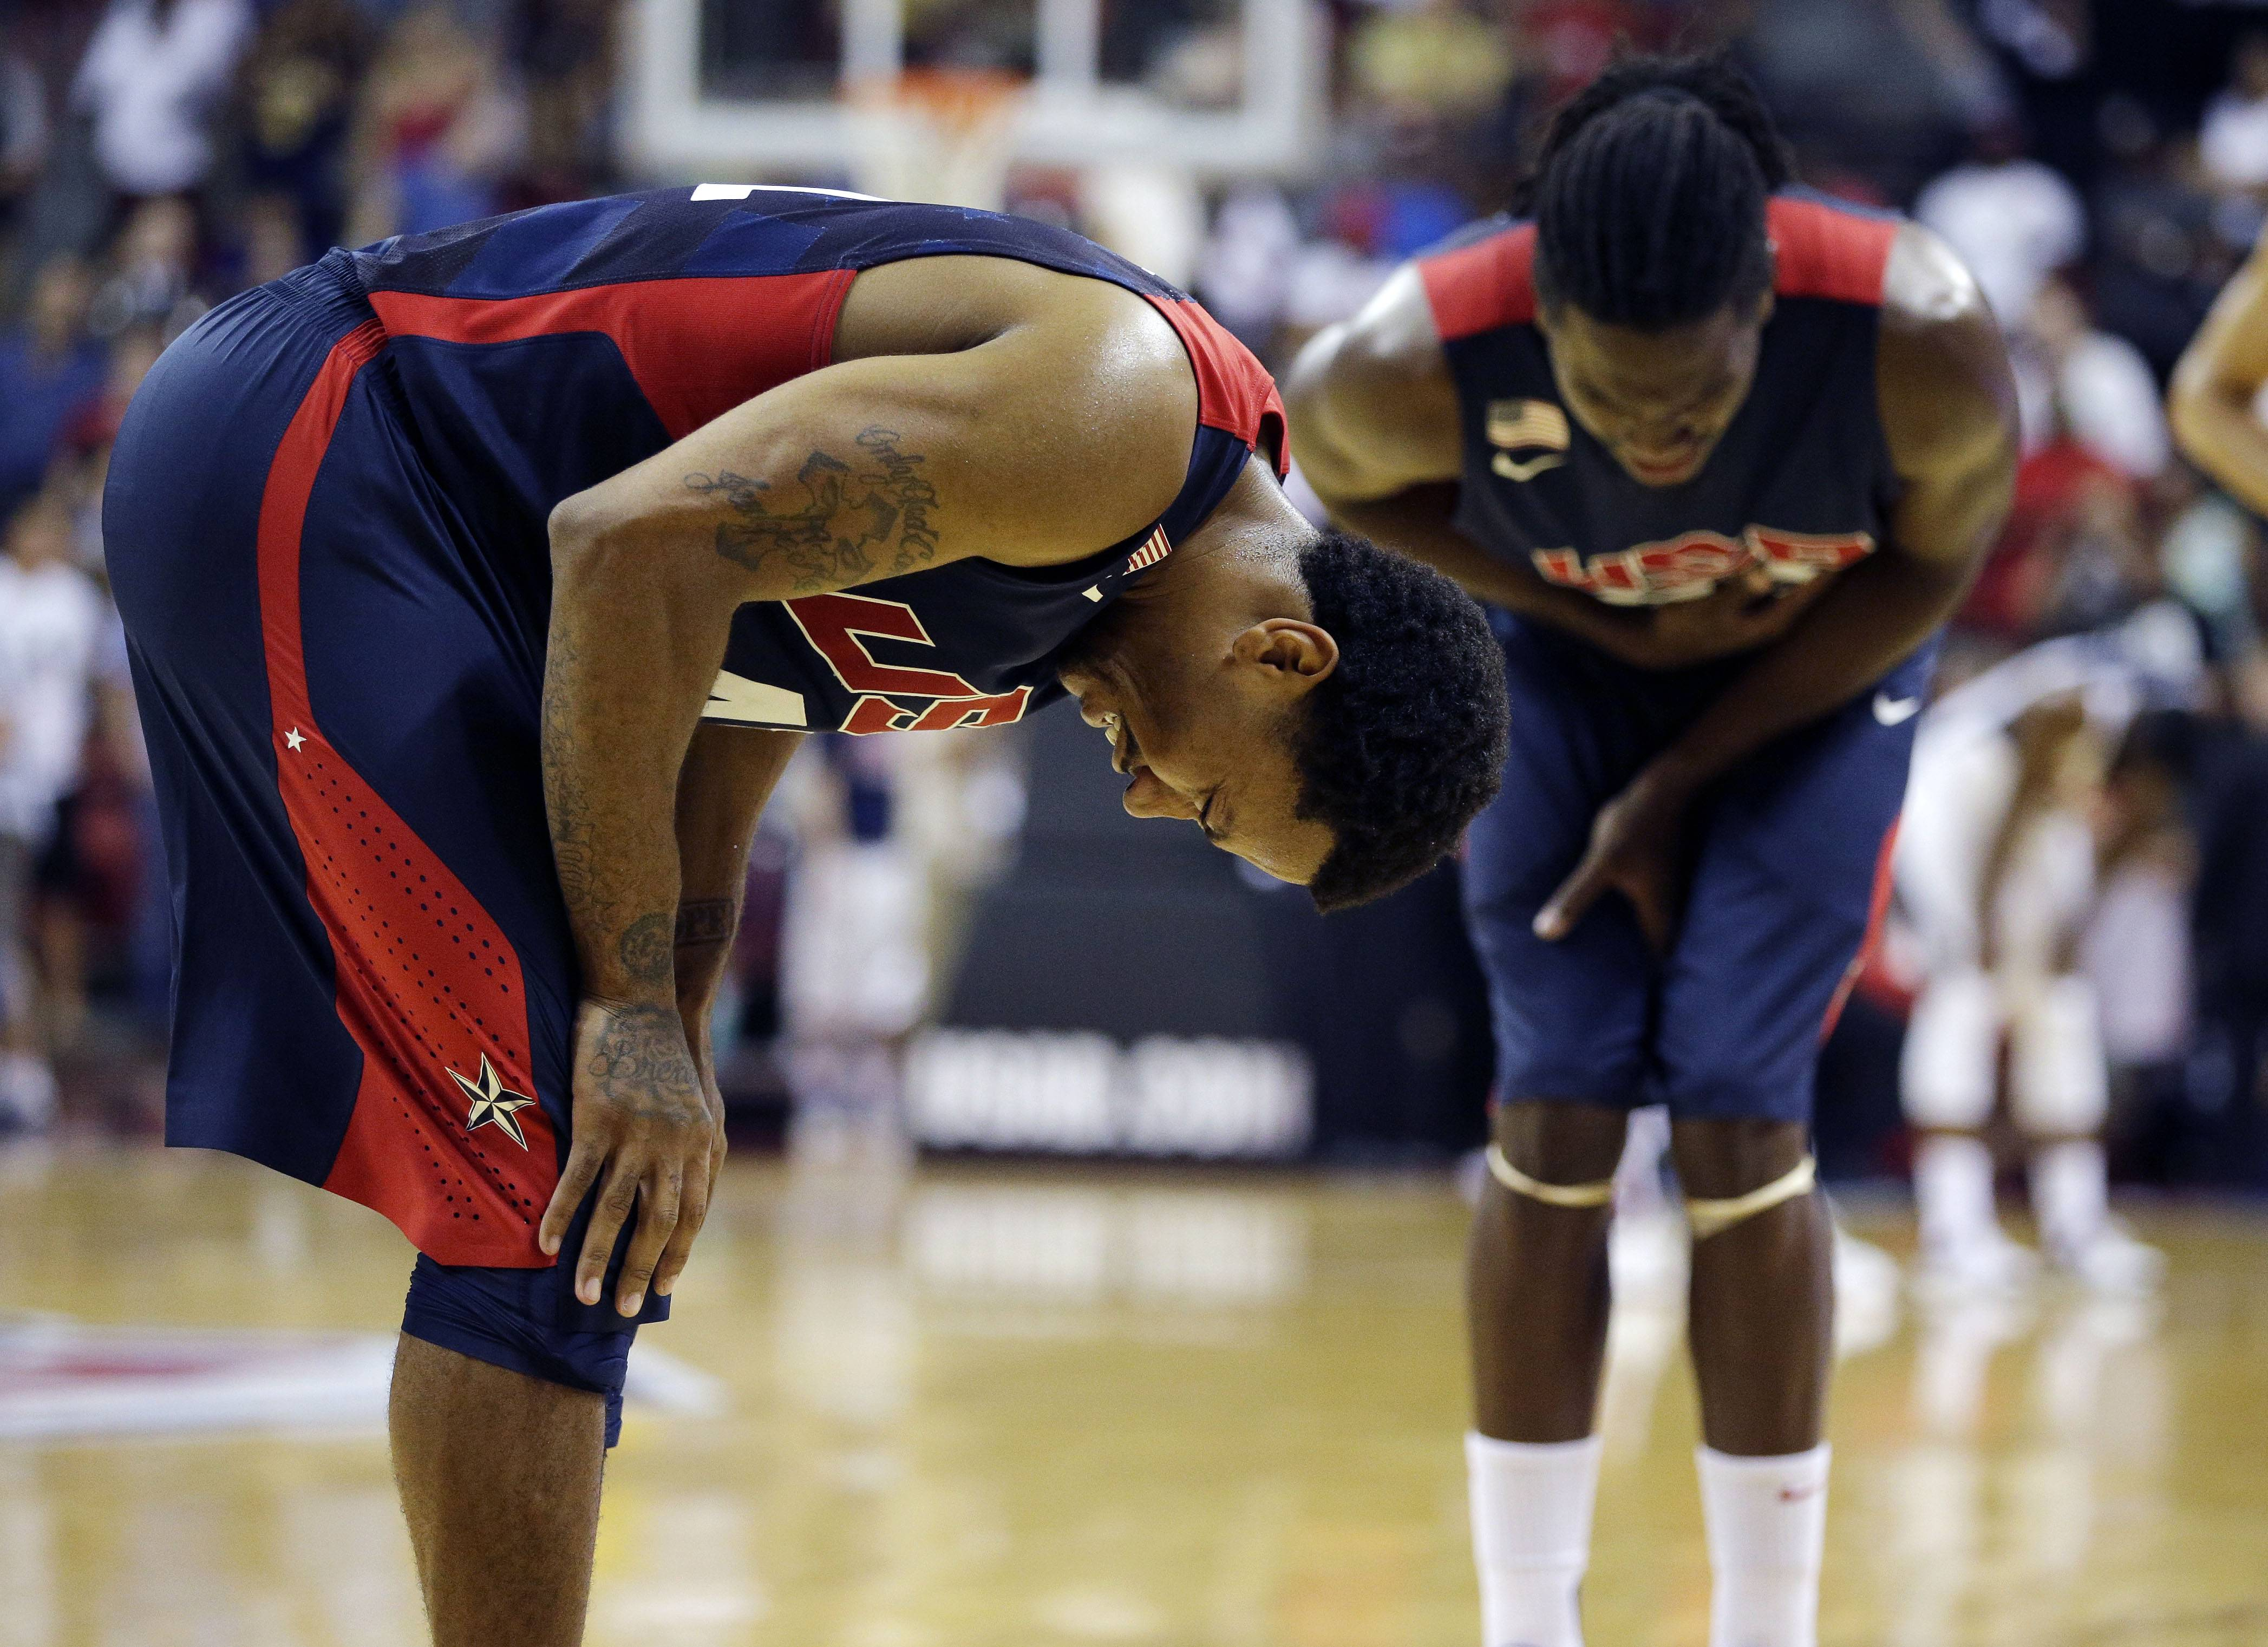 Chicago Bulls' Derrick Rose, left, and Denver Nuggets' Kenneth Faried, right, react after seeing Indiana Pacers' Paul George get injured during the USA Basketball Showcase game Friday, Aug. 1, 2014, in Las Vegas.